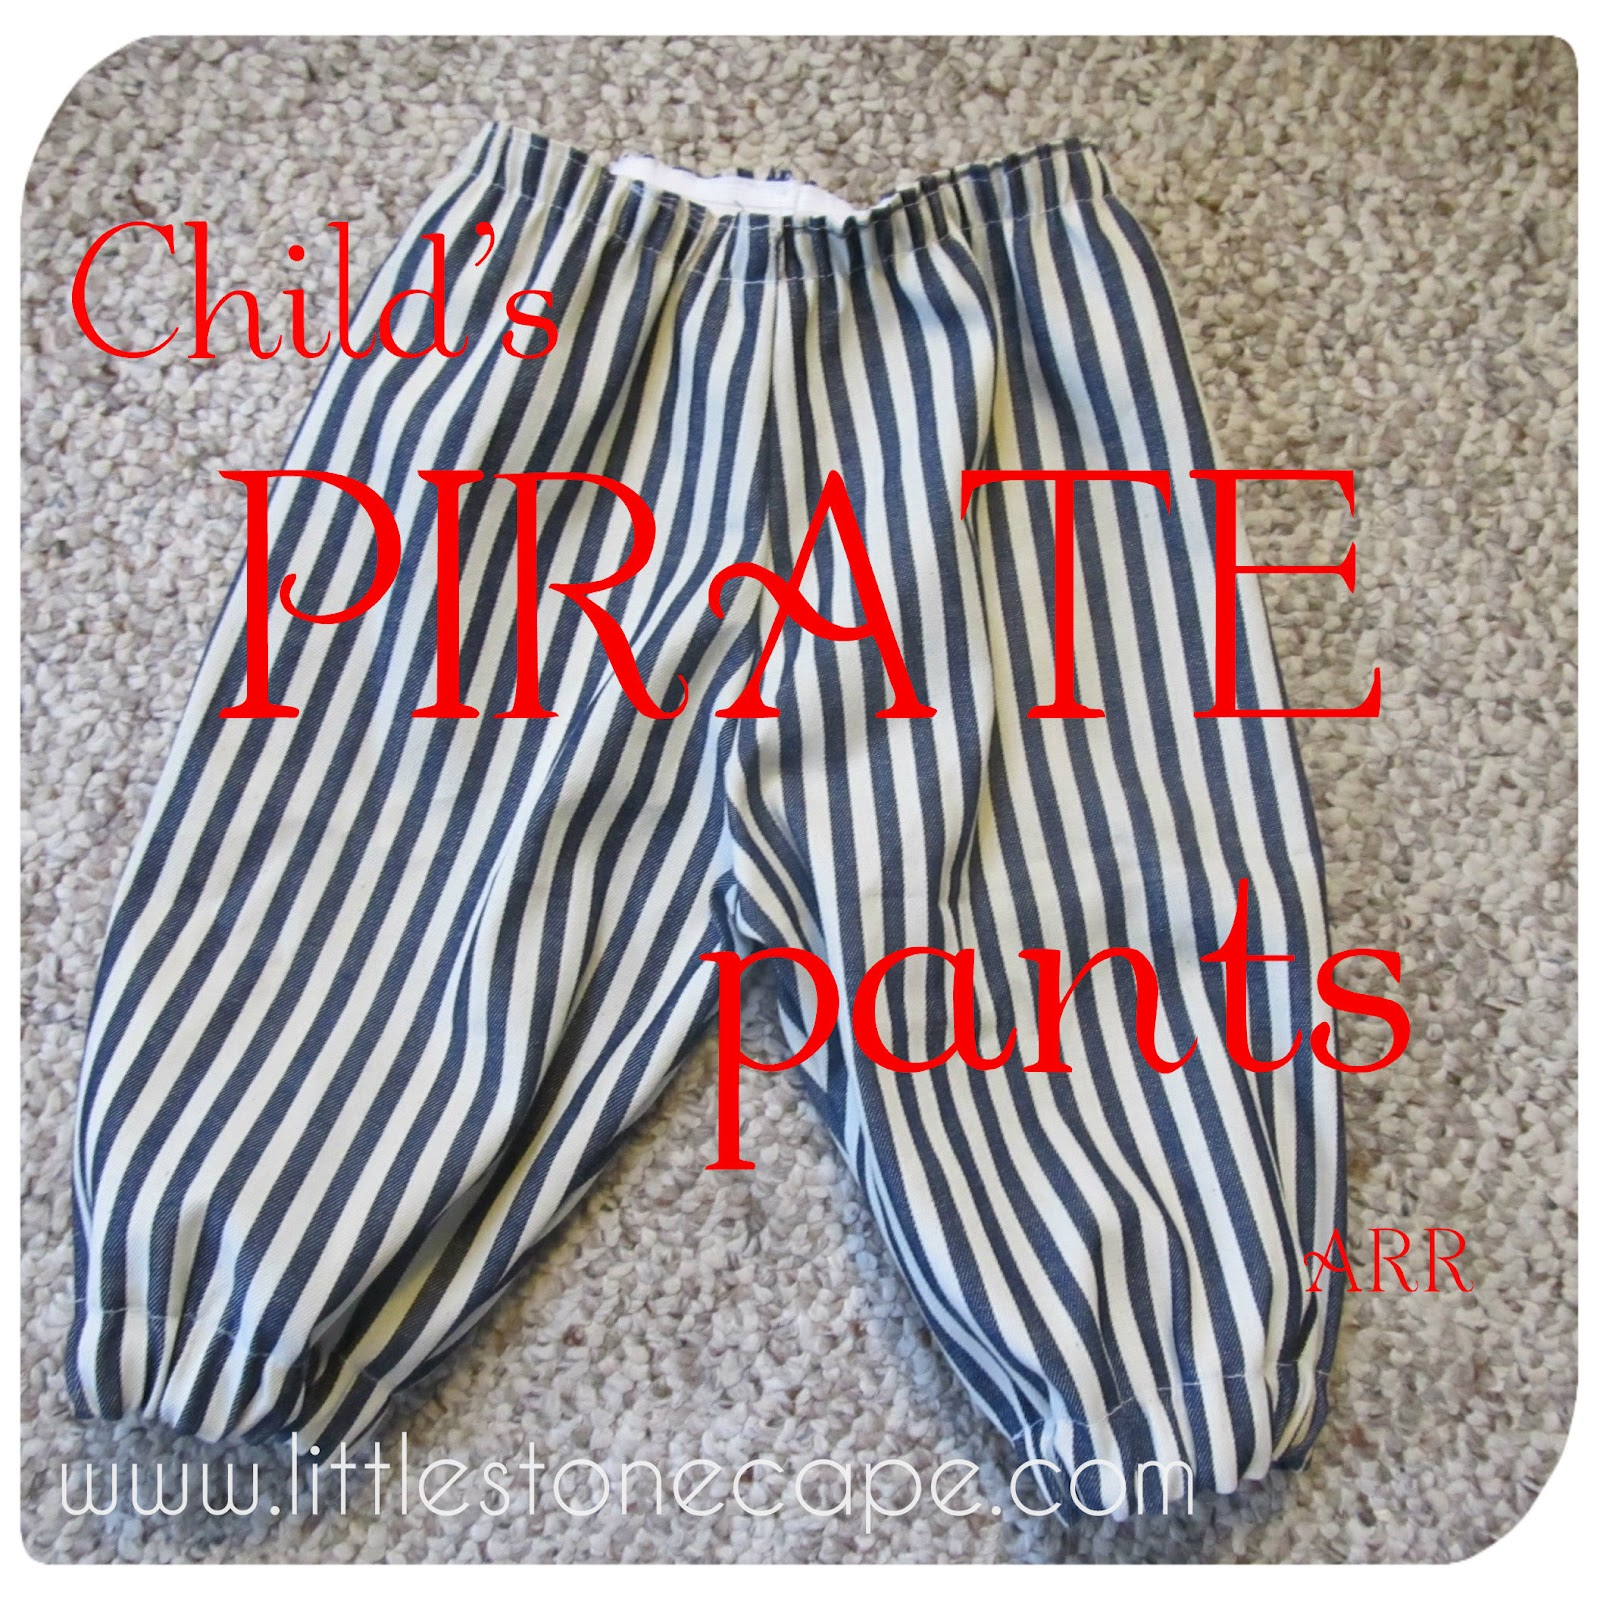 In The Little Stone Cape Child S Pirate Pants